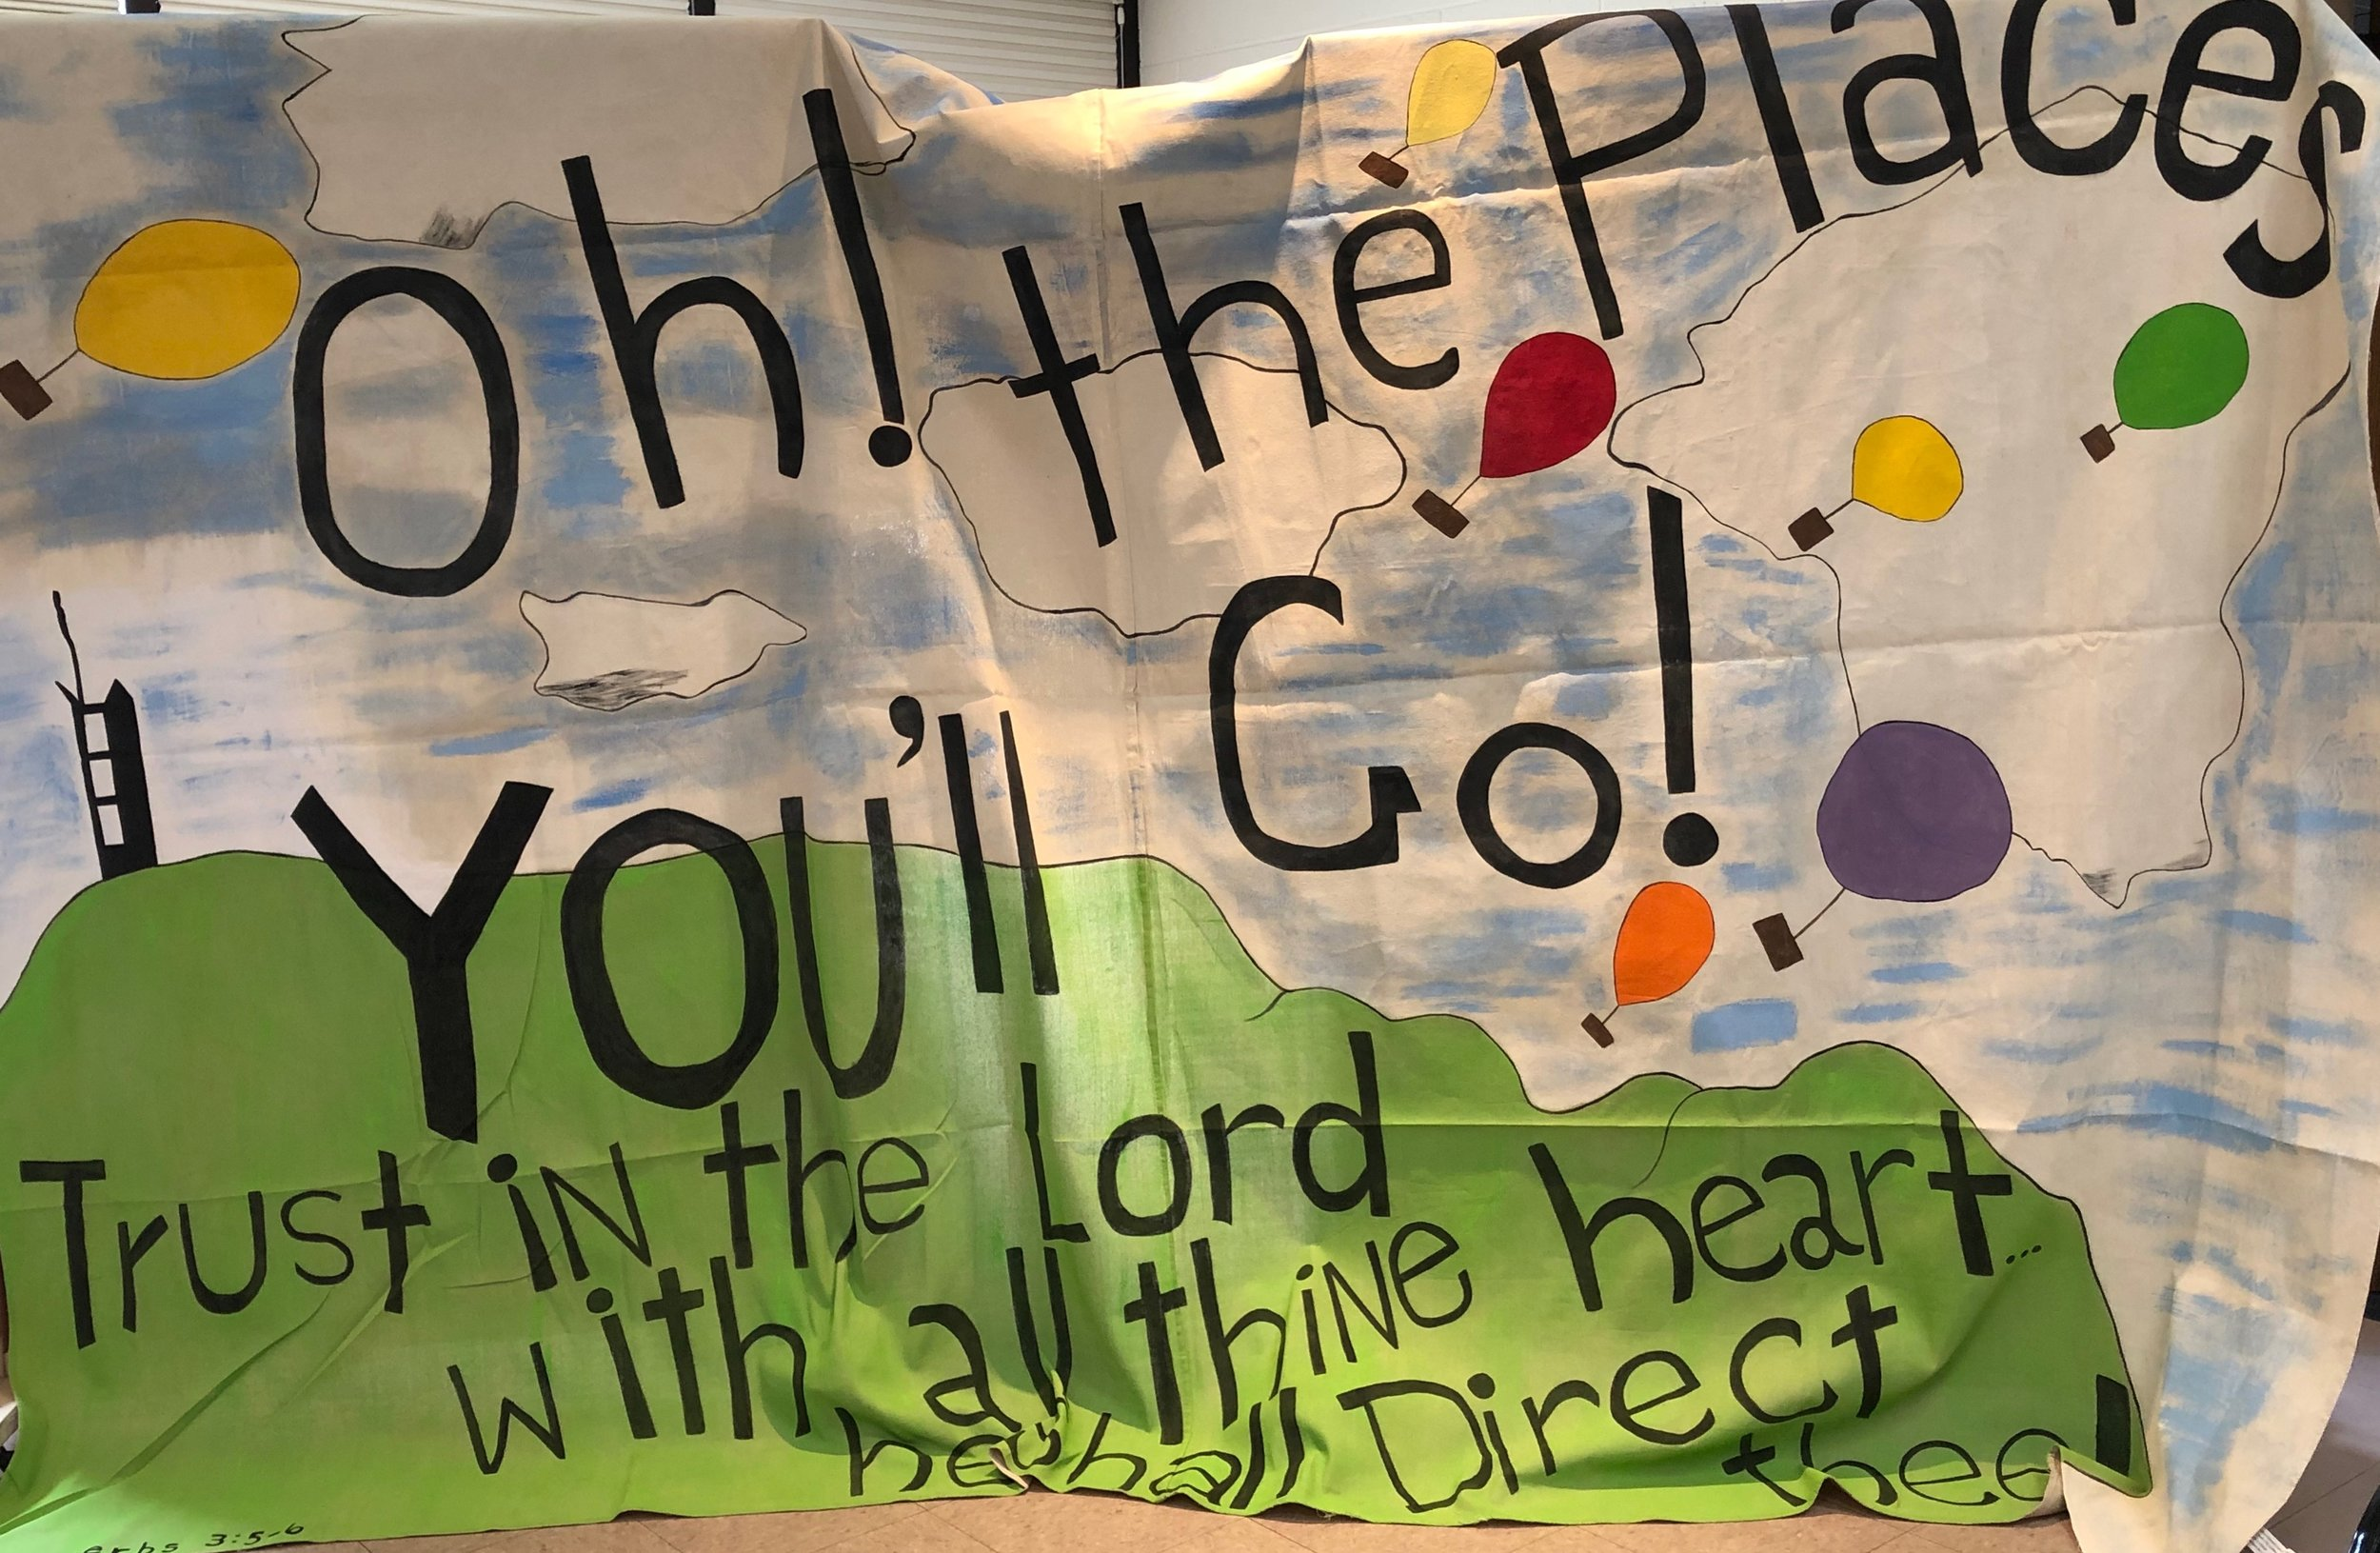 This wonderful banner greeted the recent Wee Care kindergarten graduates on May 22, 2019.